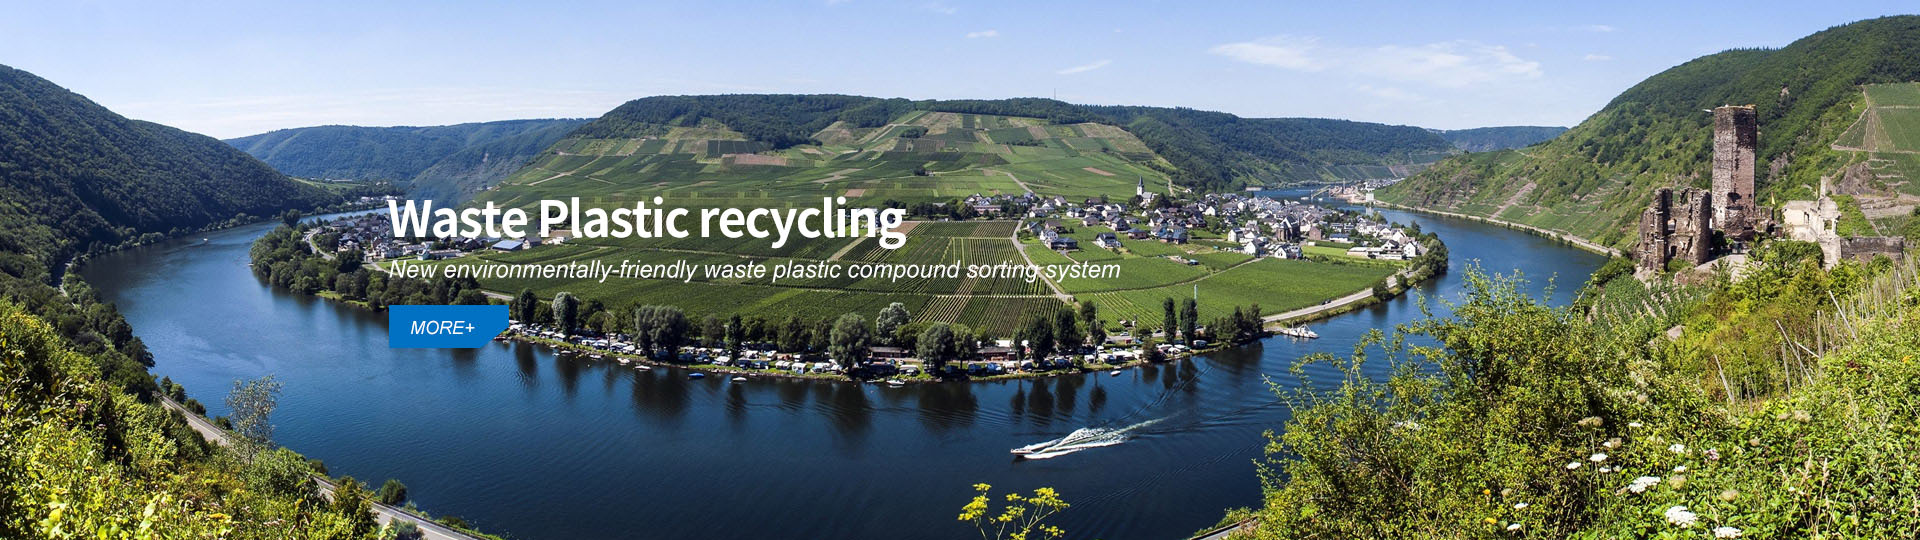 Recycling waste plastics - New environmentally friendly waste plastics compounding system